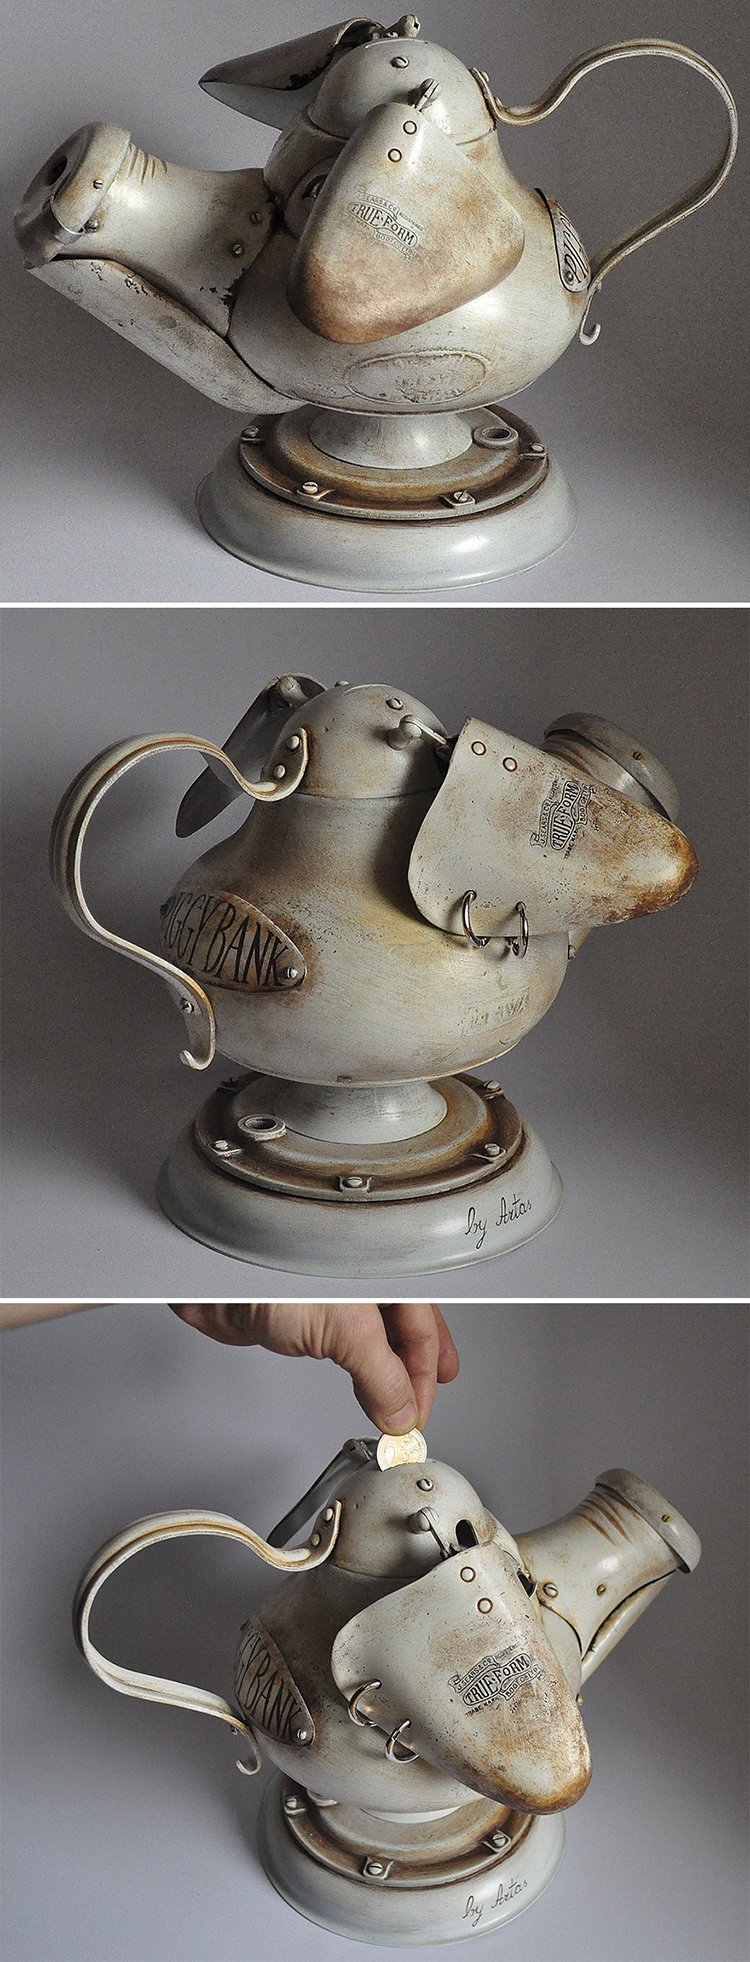 steampunk sculptures piggy bank